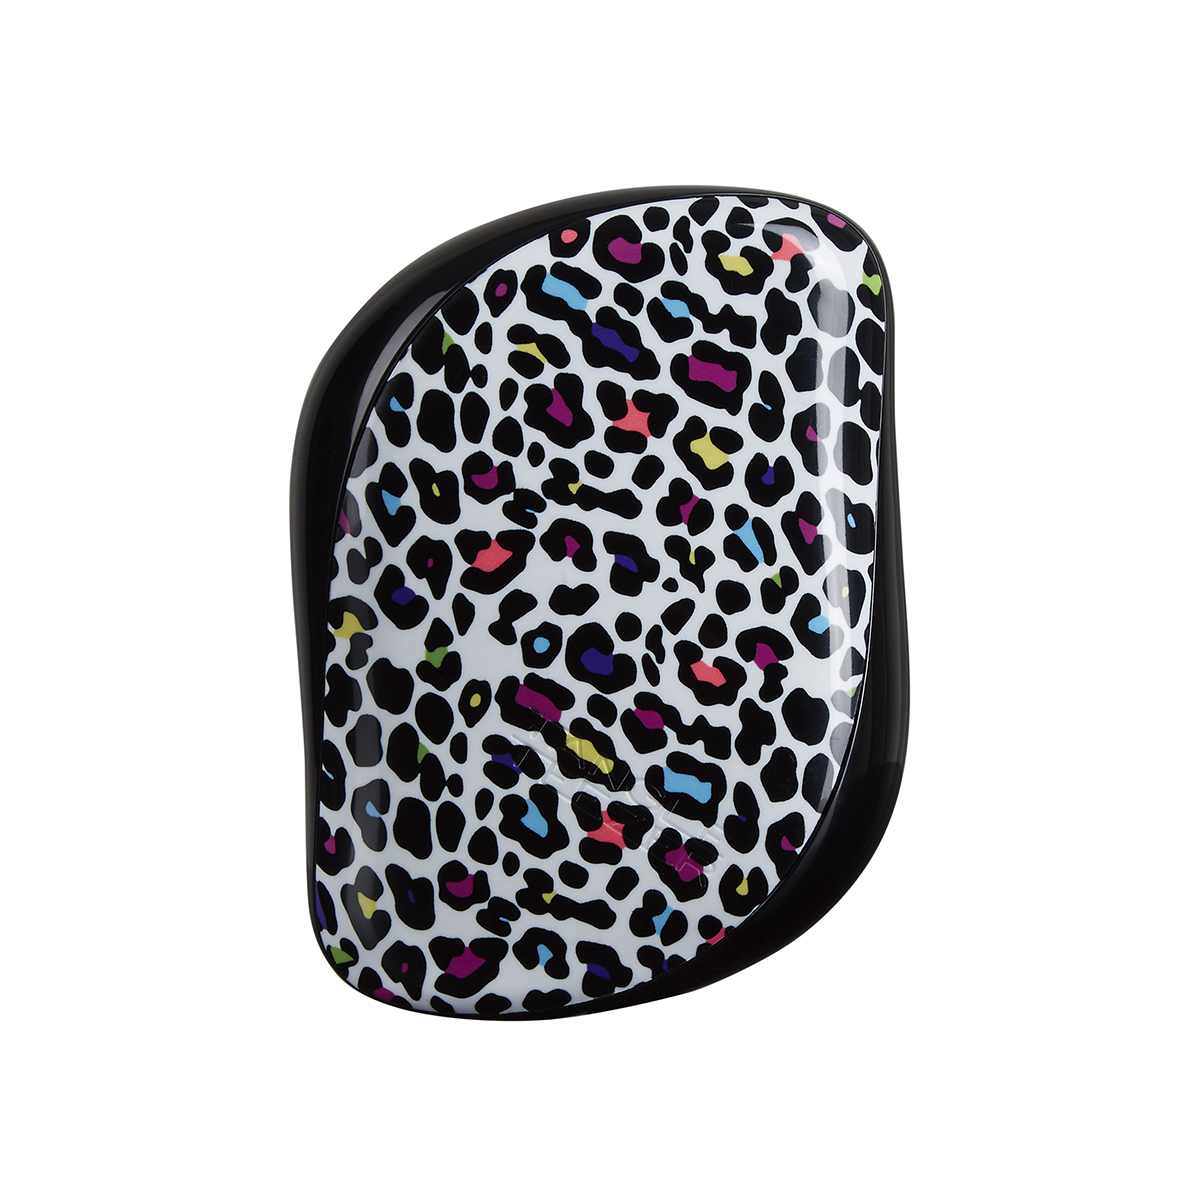 TANGLE TEEZER Расческа для волос / Compact Styler Punk Leopard school supplies 3d snake clip monte mount high quality roller pen gel pen fashion kawaii orange metal roller ball pen refill